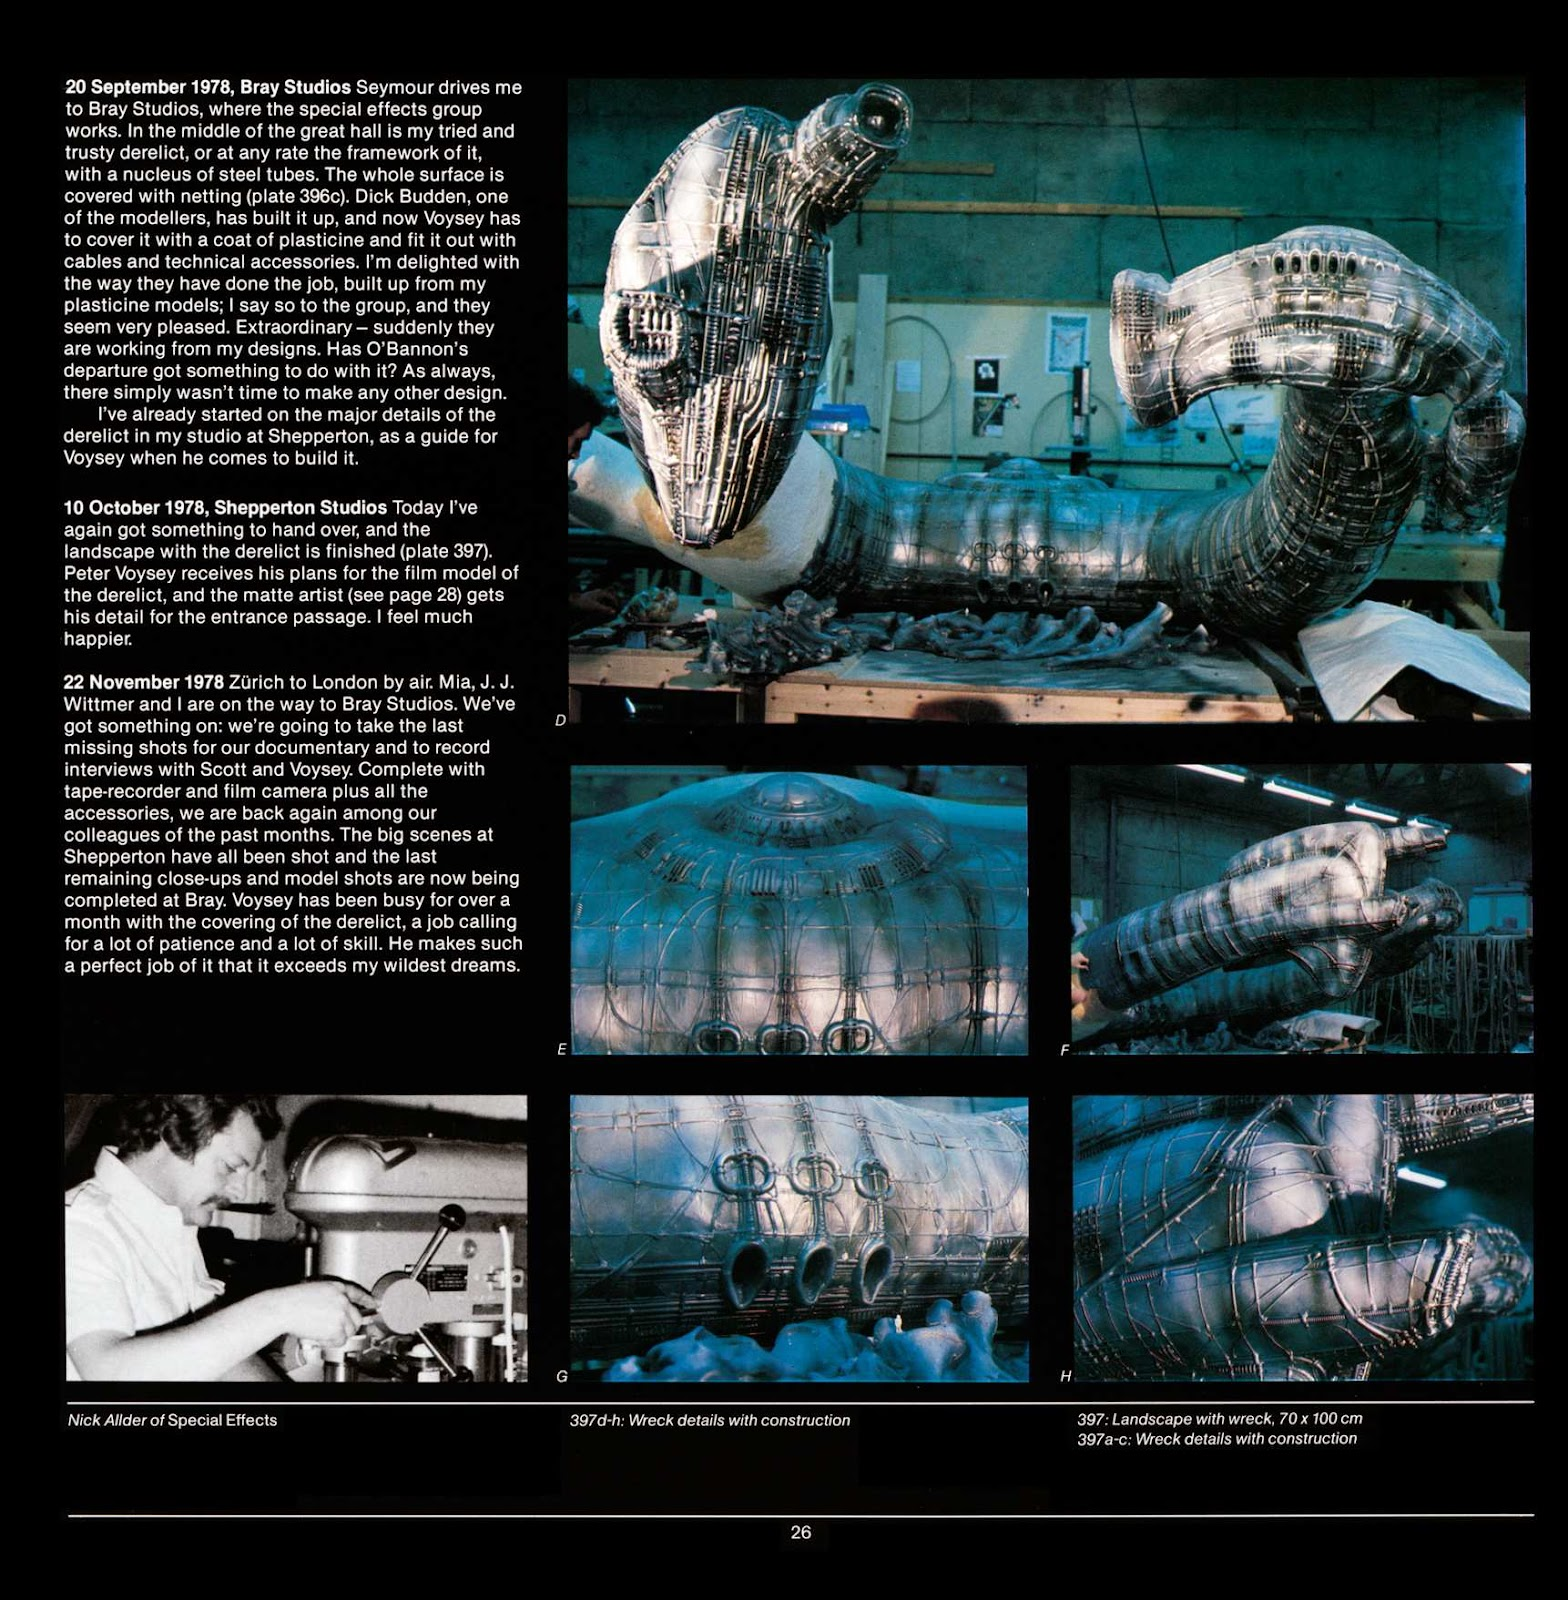 Read online Giger's Alien comic -  Issue # TPB - 28